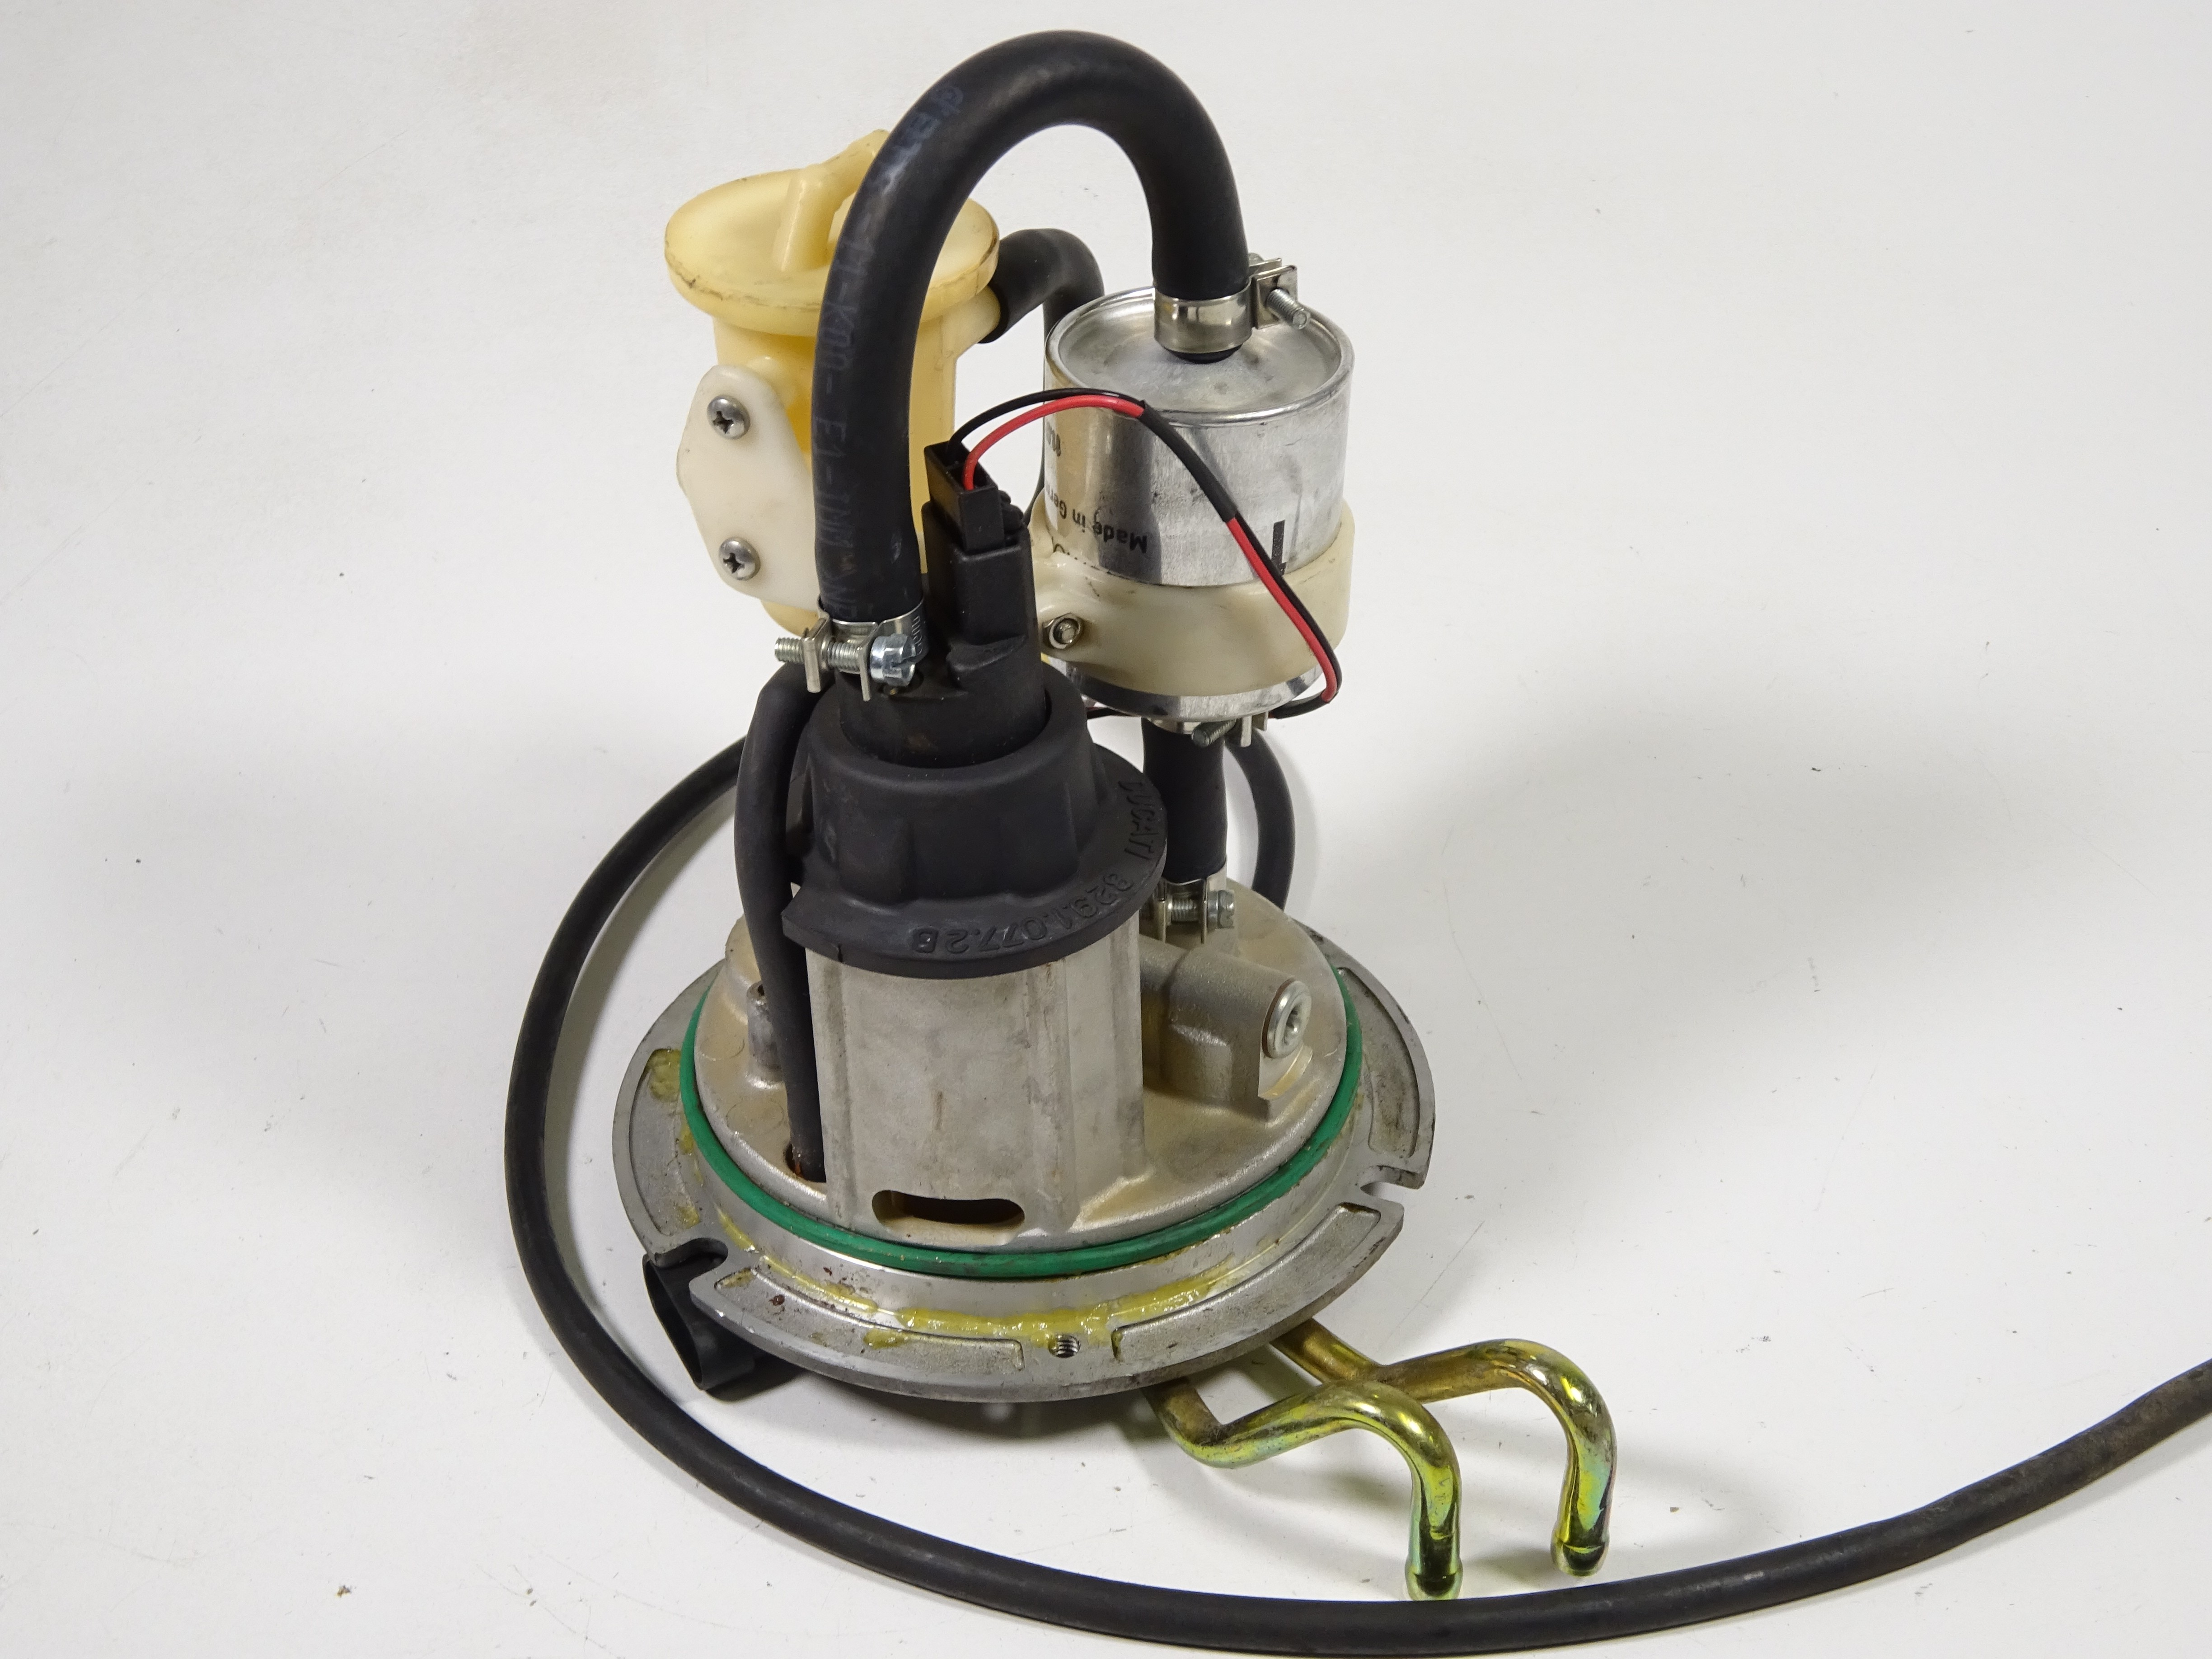 Fuel Pump Ducati St4 1997 2002 201216337 749 Wiring Info Before You Order